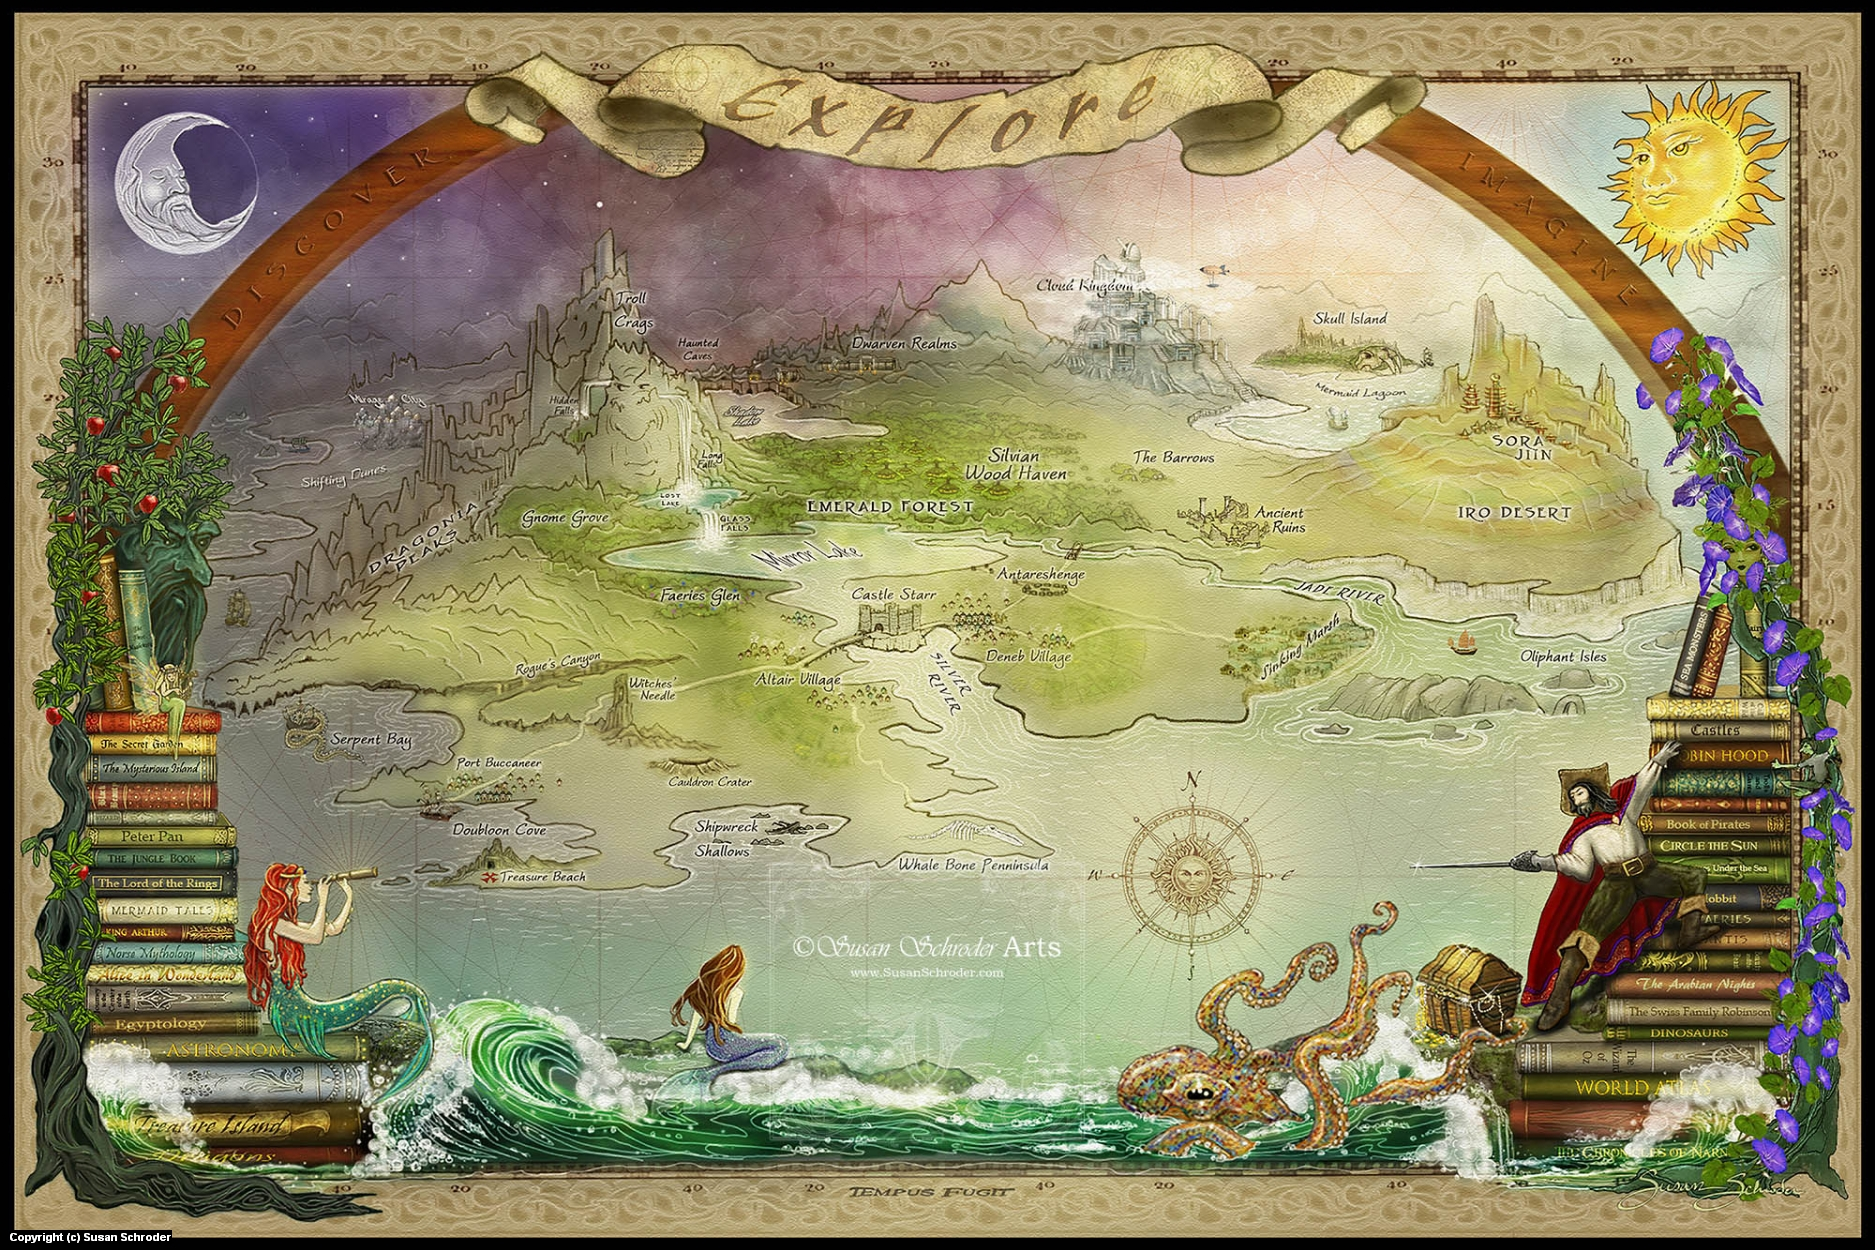 Storybook Map Artwork by Susan Schroder